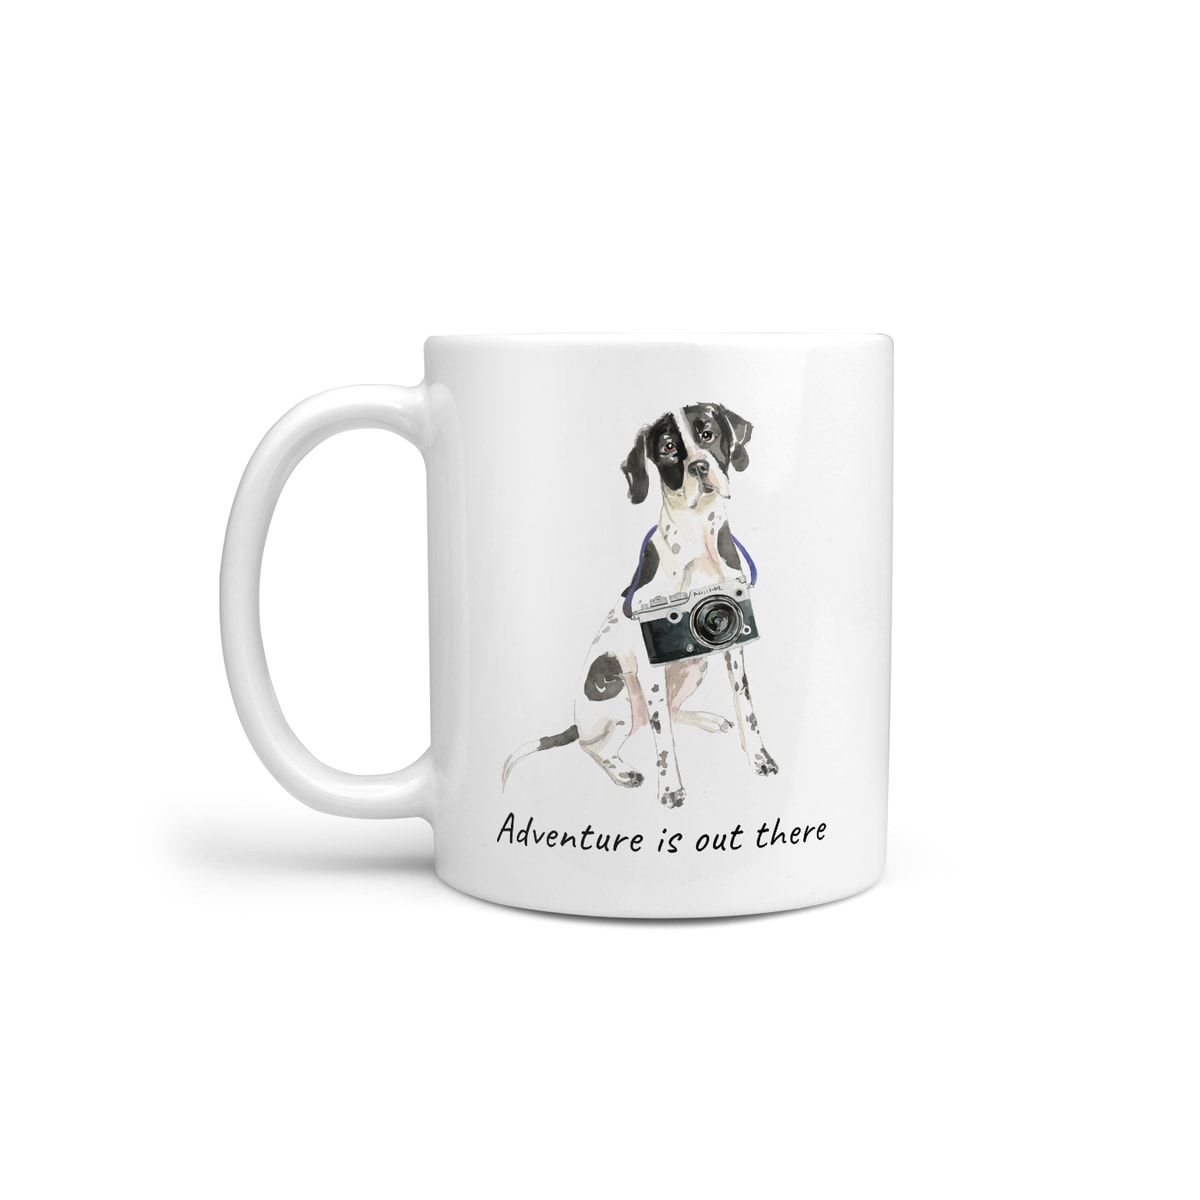 Adventure is out there English Pointer dog mug (Illustrated